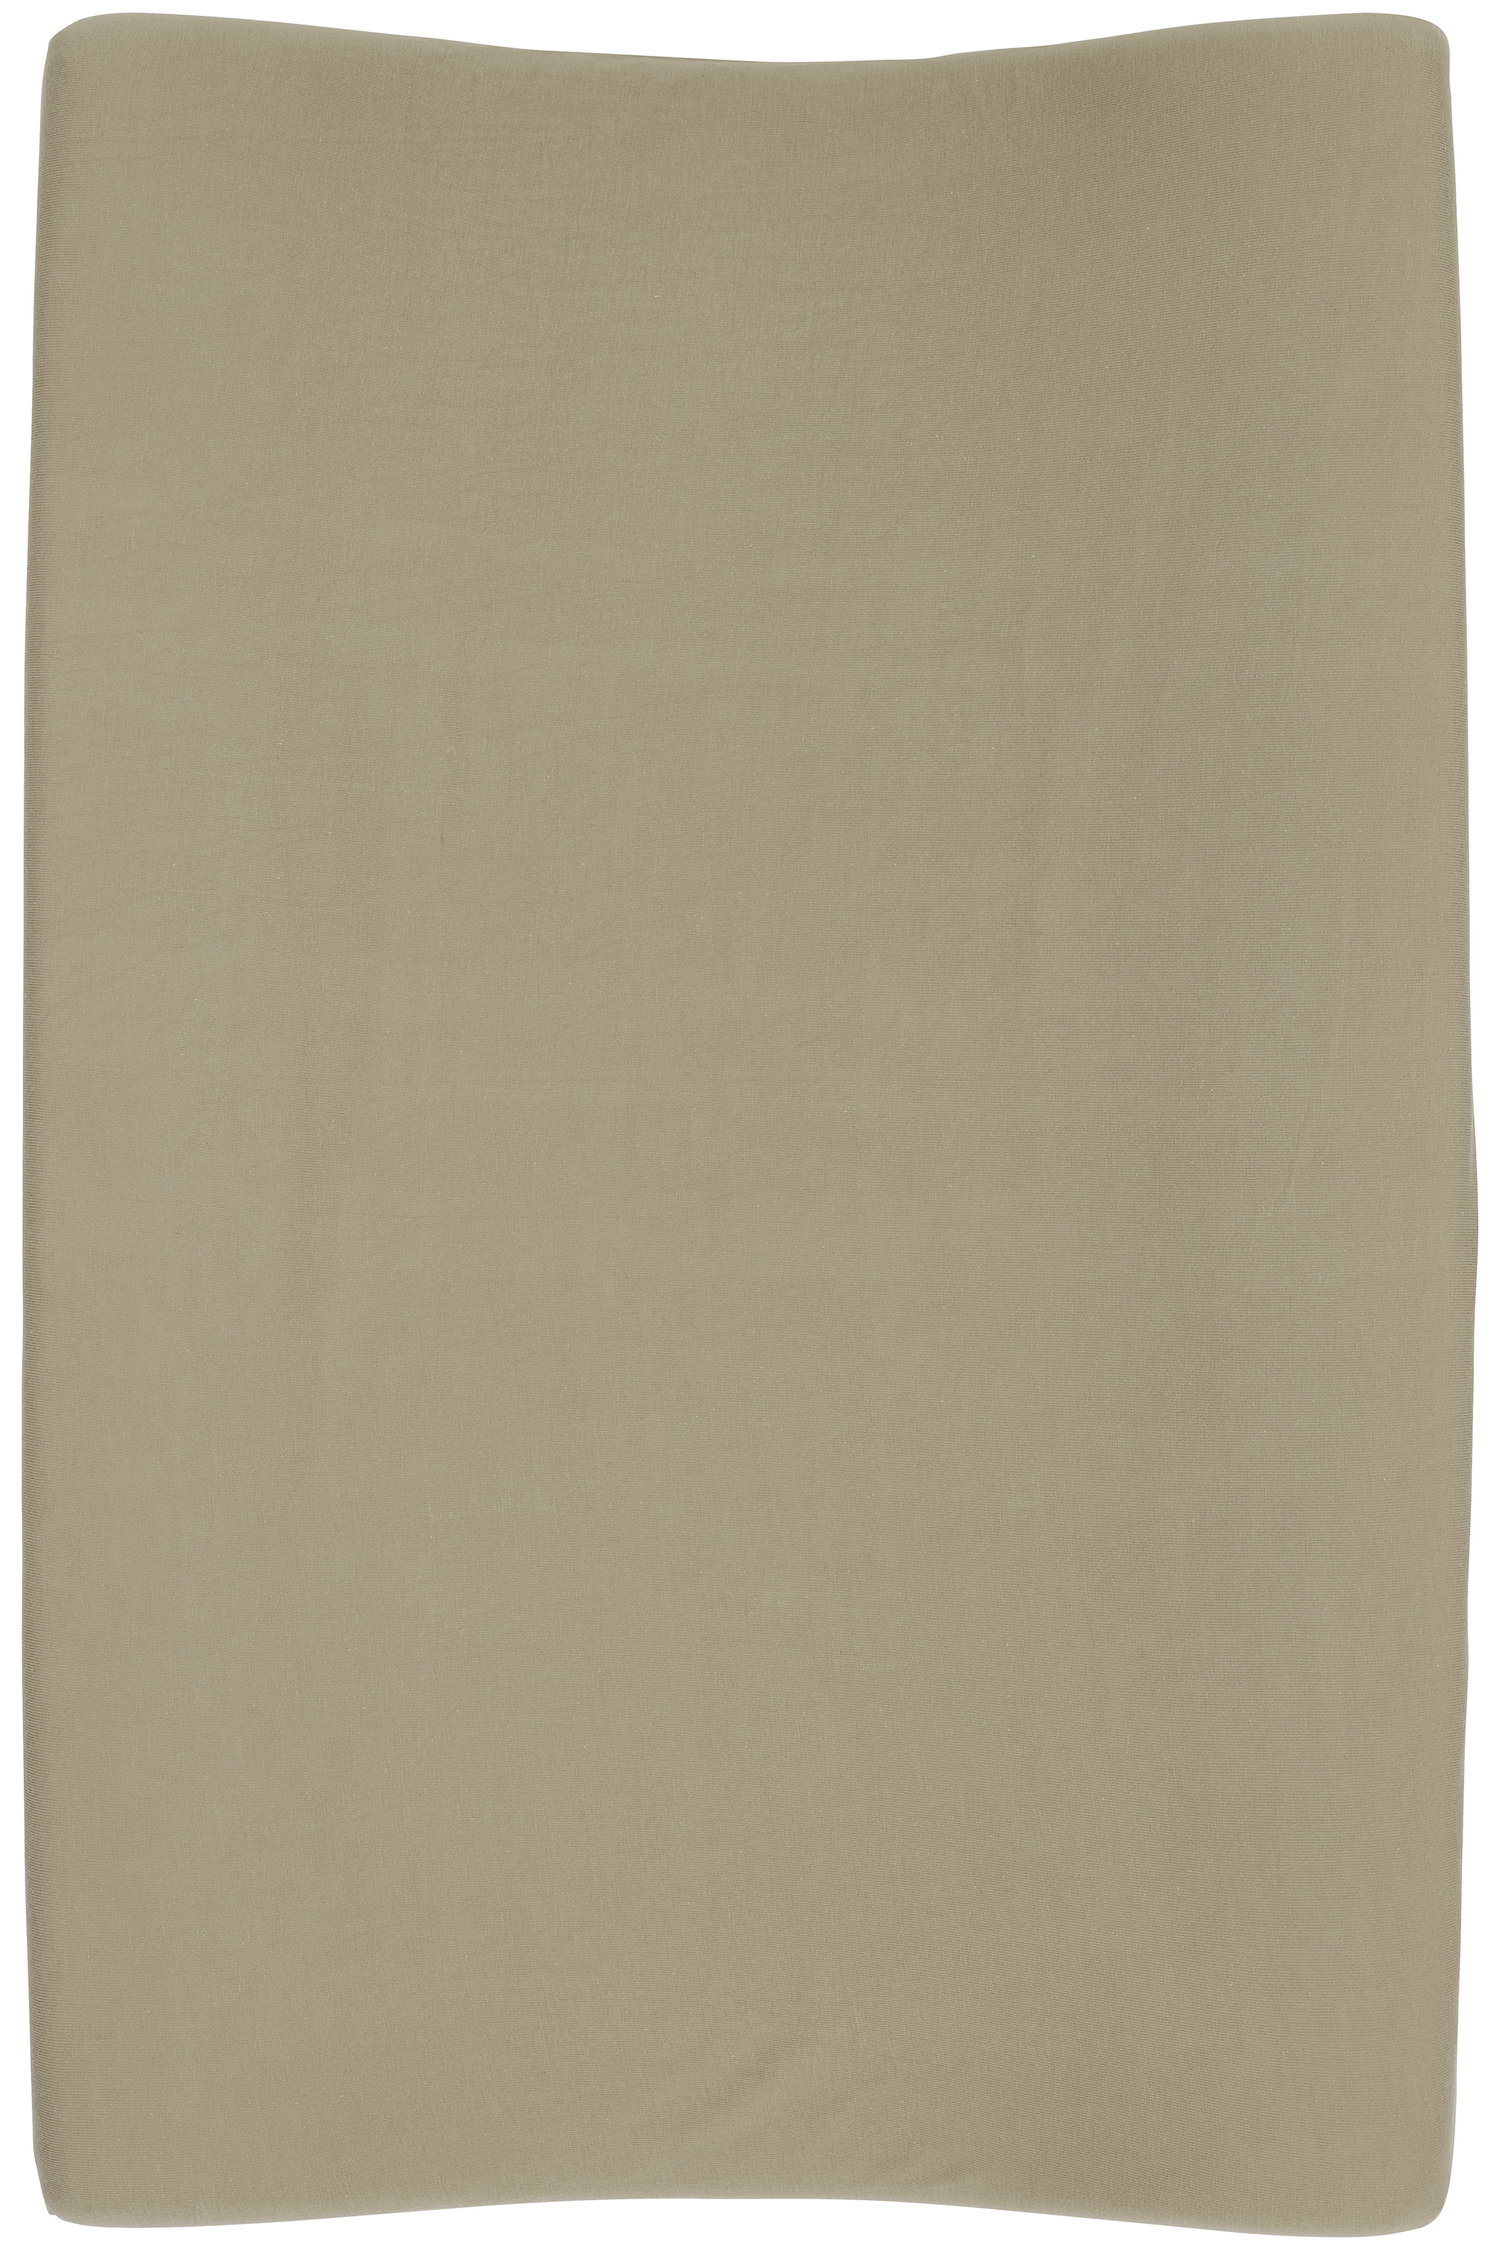 Aankleedkussenhoes Basic Jersey 2-pack - Taupe - 50x70cm